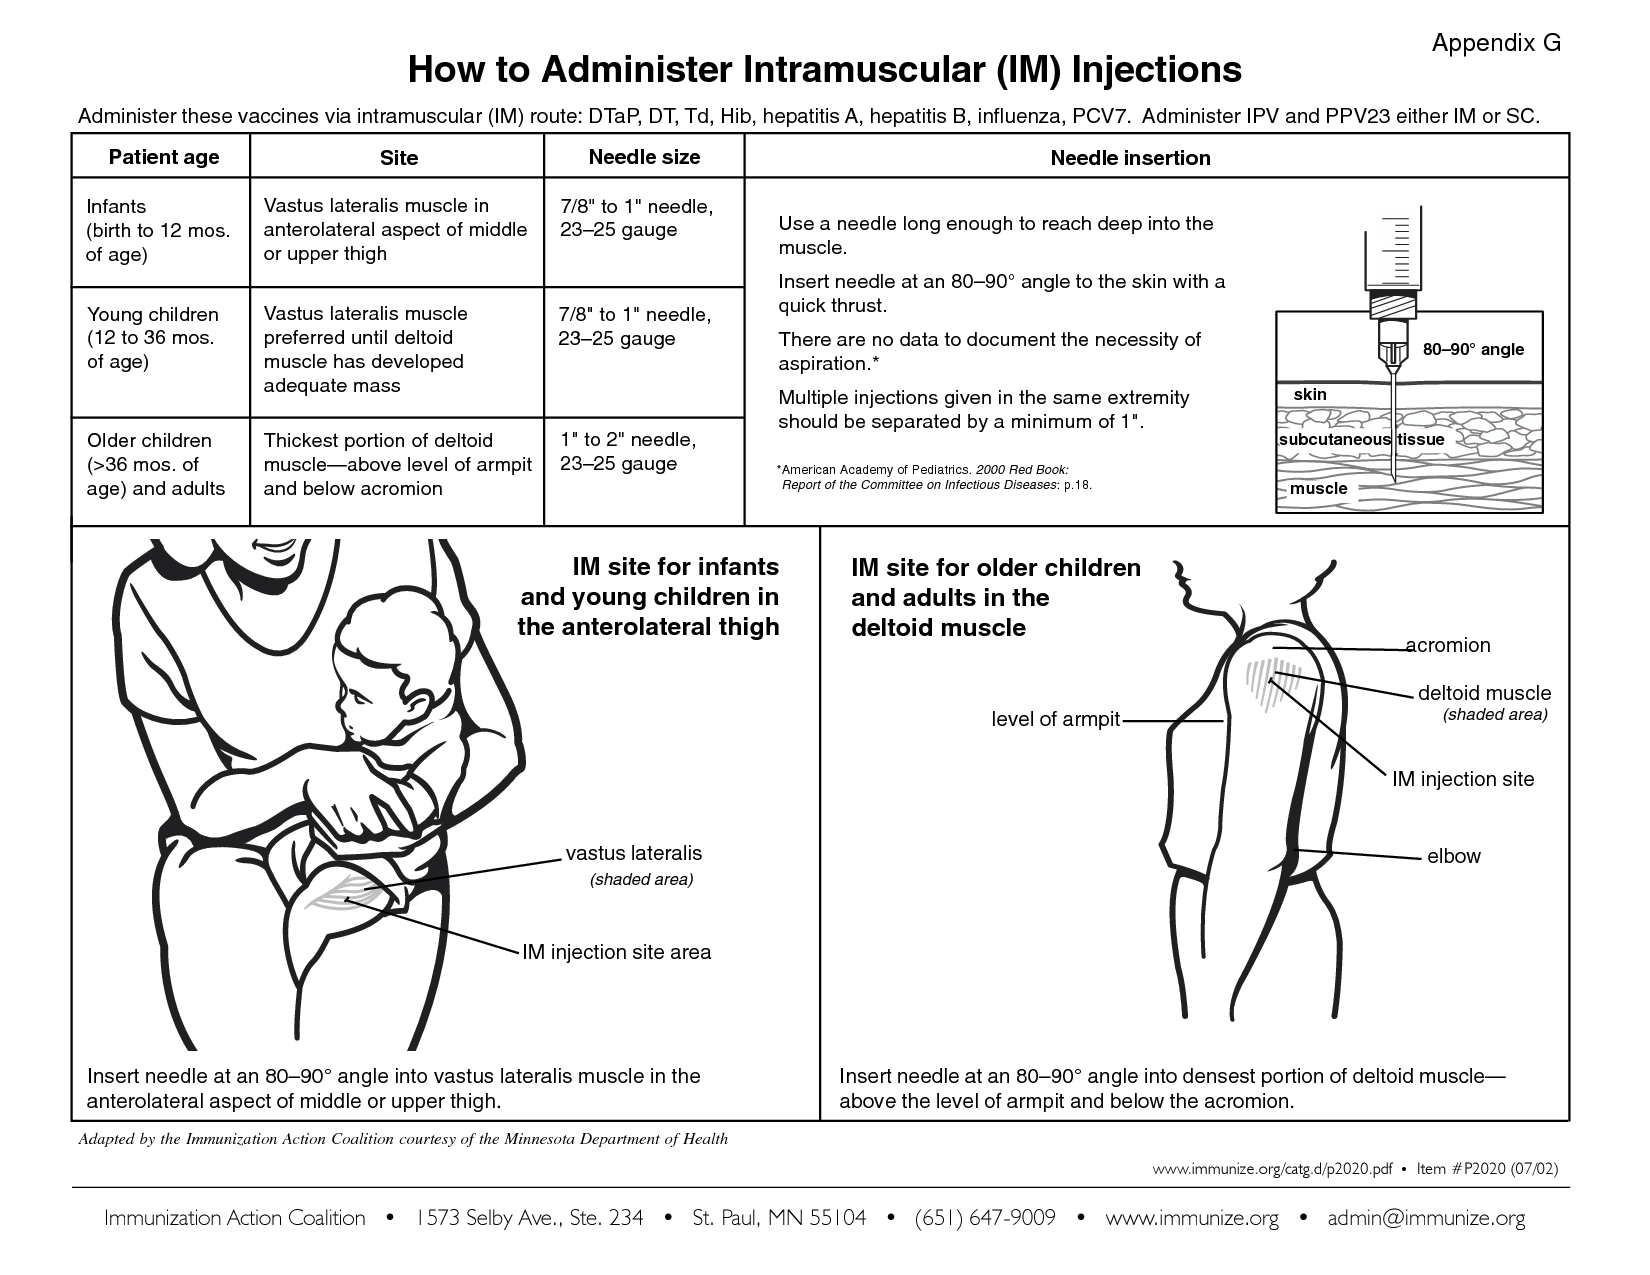 Intramuscular Injection With Images